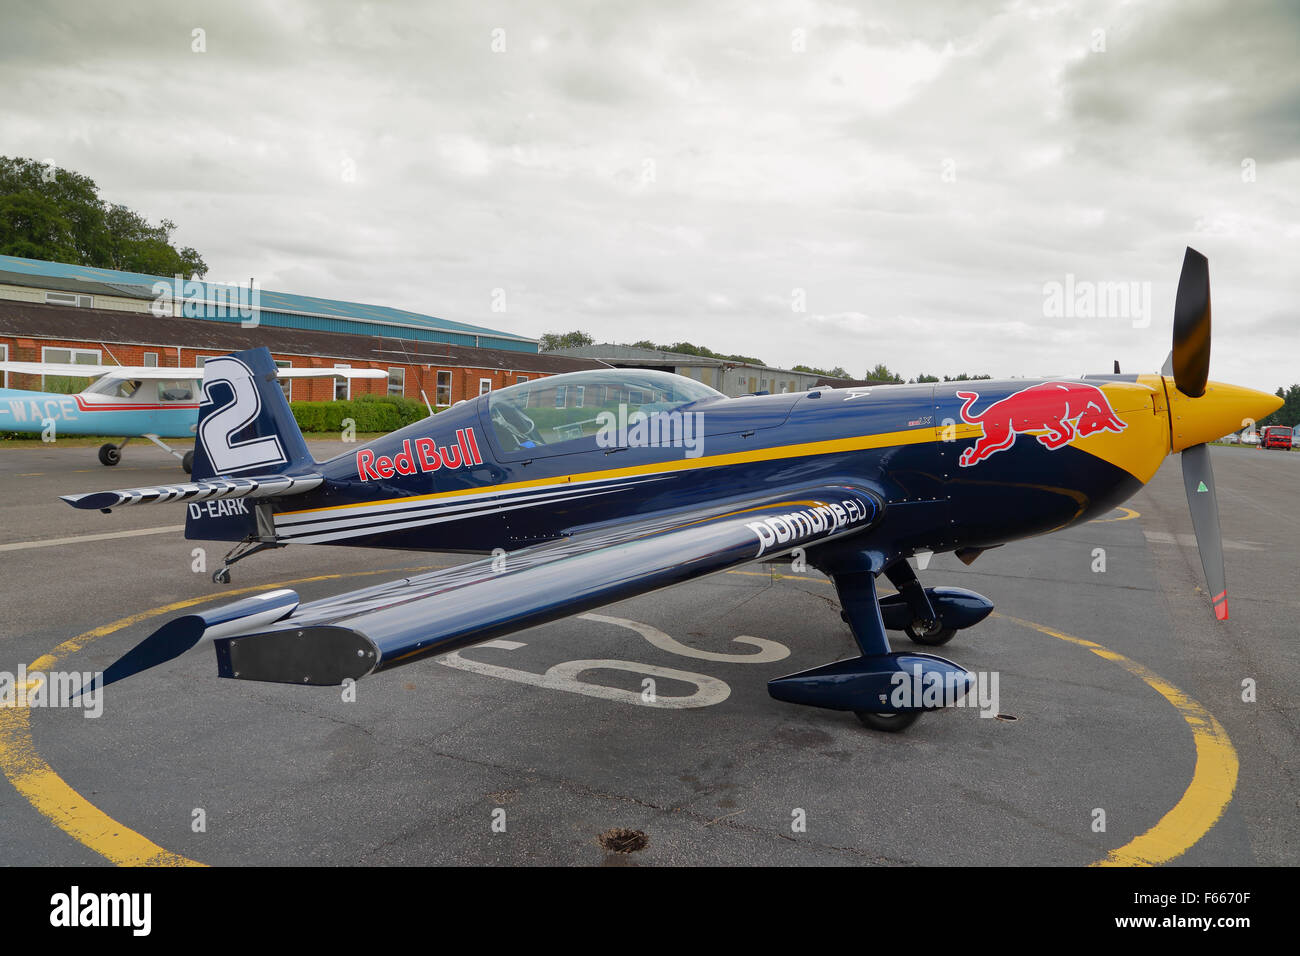 Preparation at Wycombe Airpark for the Red Bull Air Race 2015 at Ascot - Stock Image